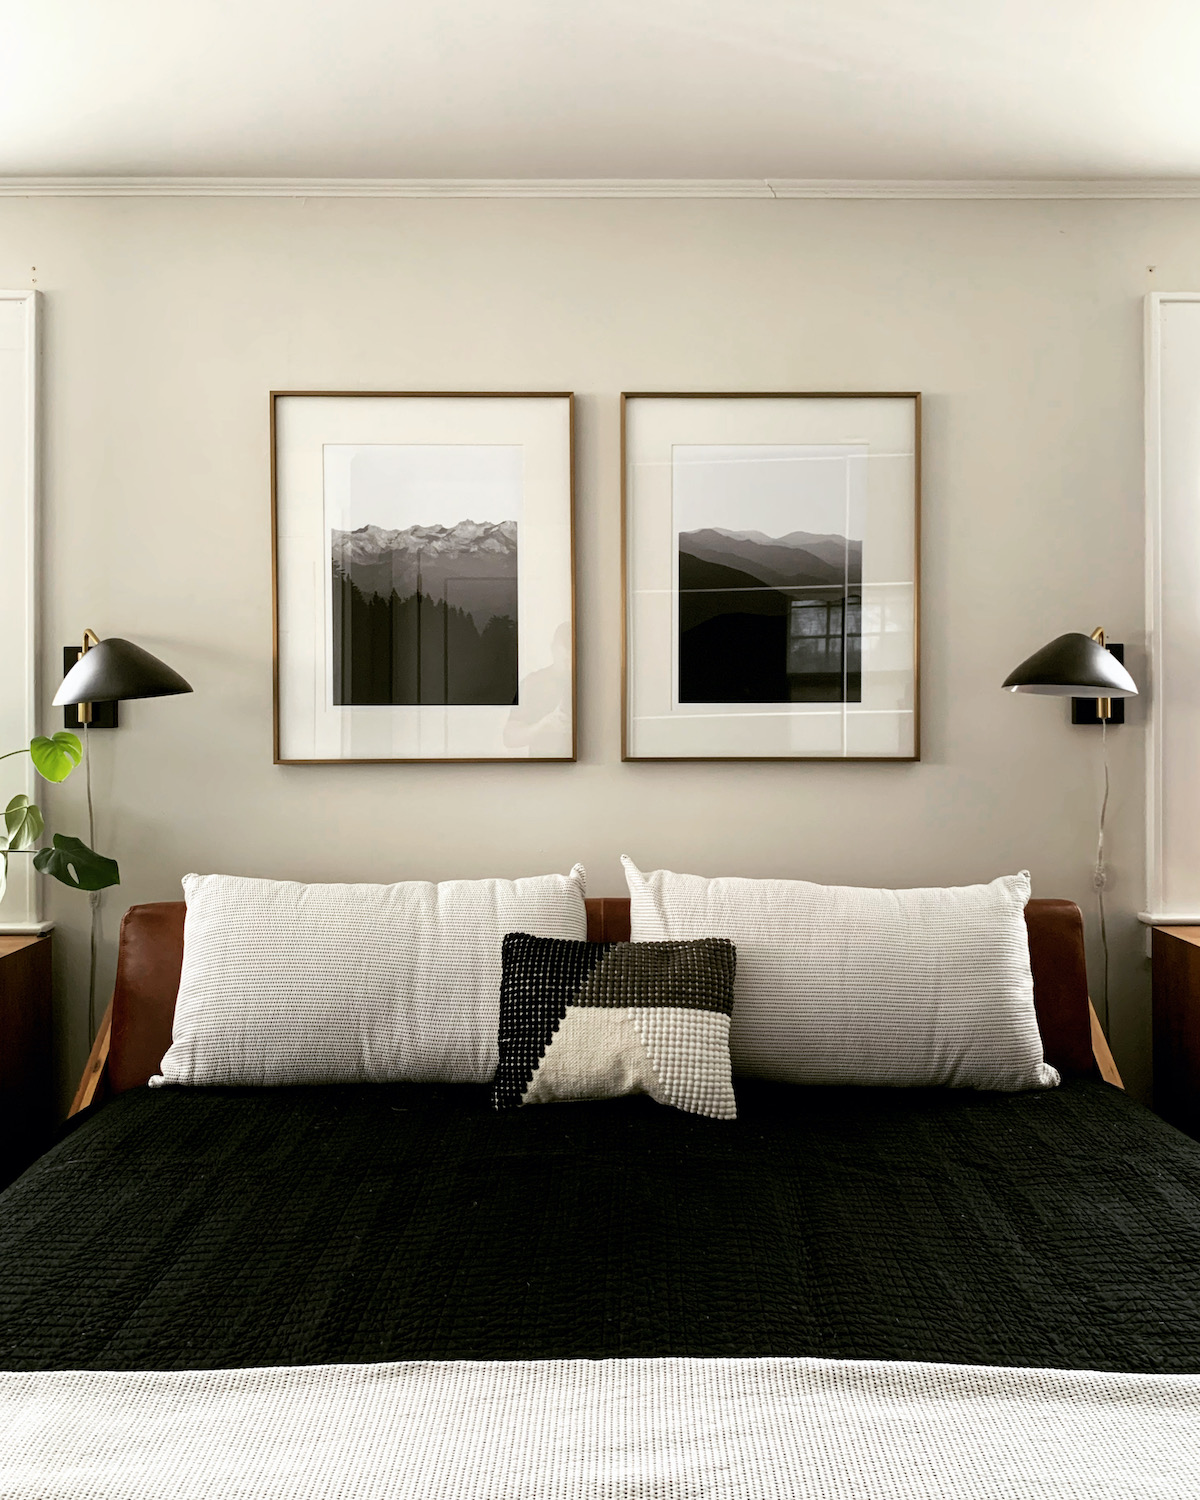 Two framed Artifact Uprising Large Format prints hung above bed featuring black-and-white images of mountainscapes